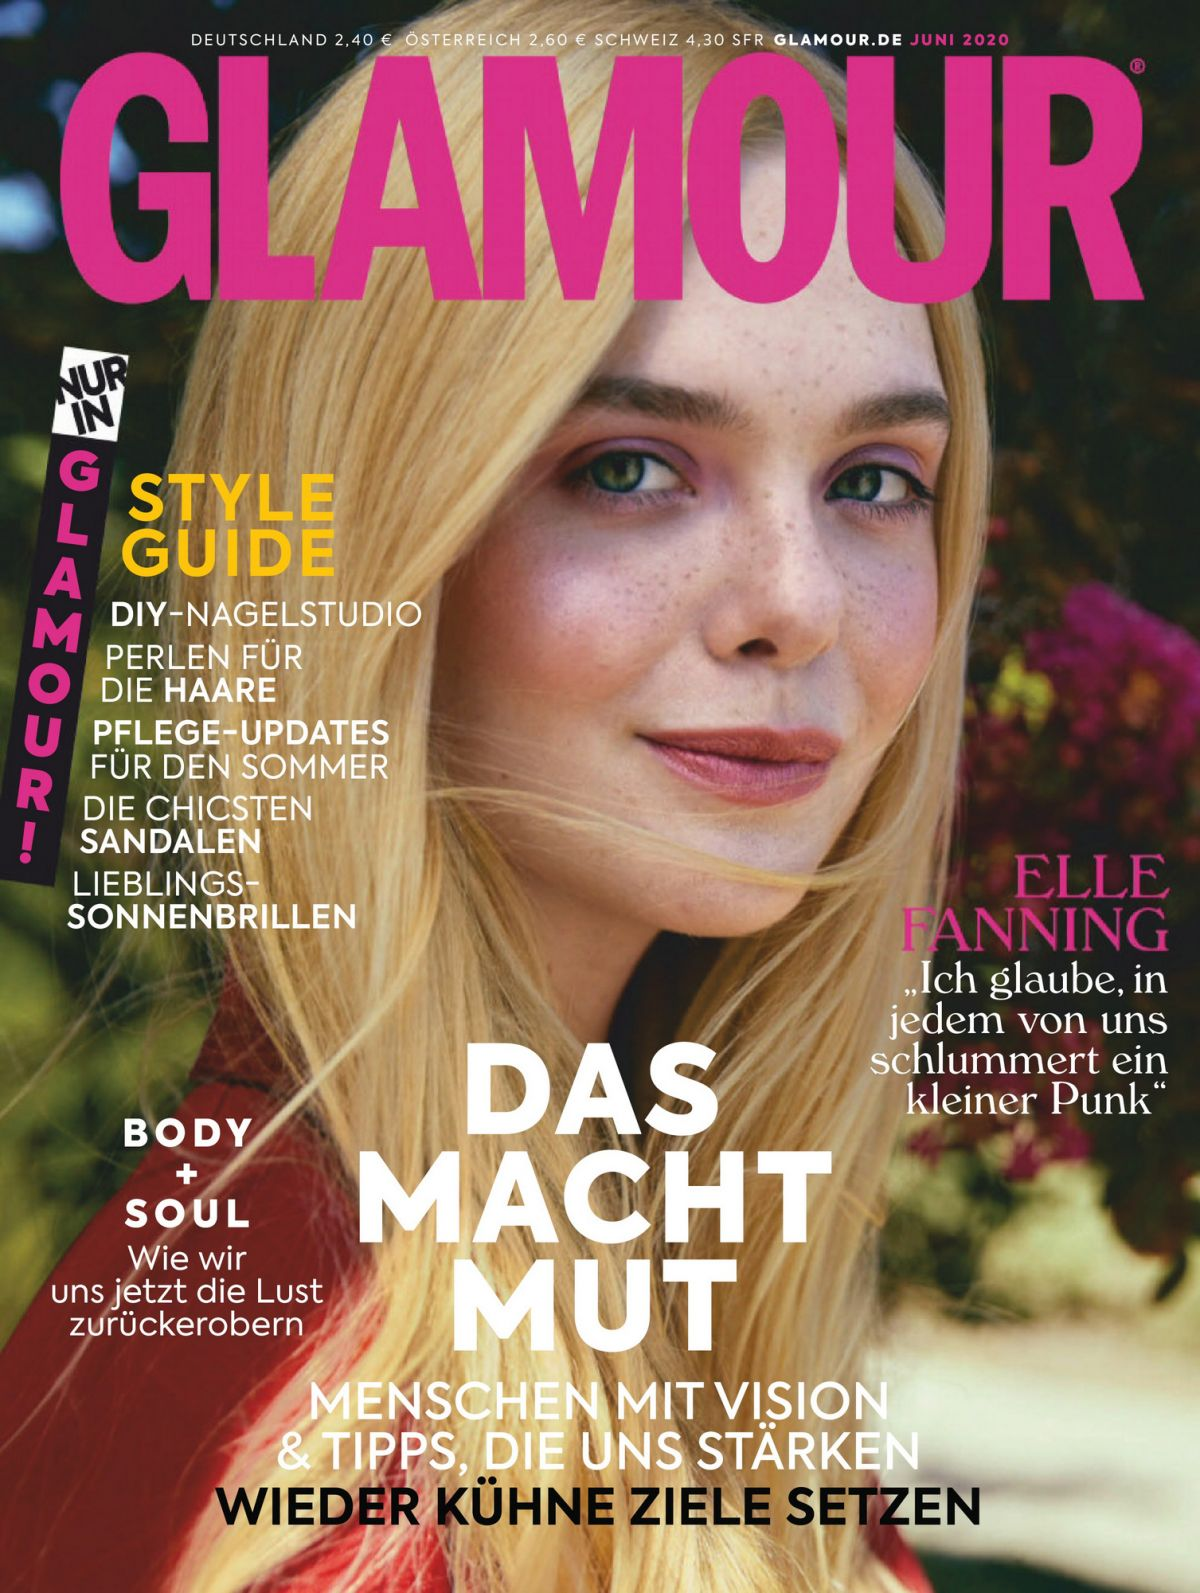 ELLE FANNING In Glamour Magazine, Germany June 2020